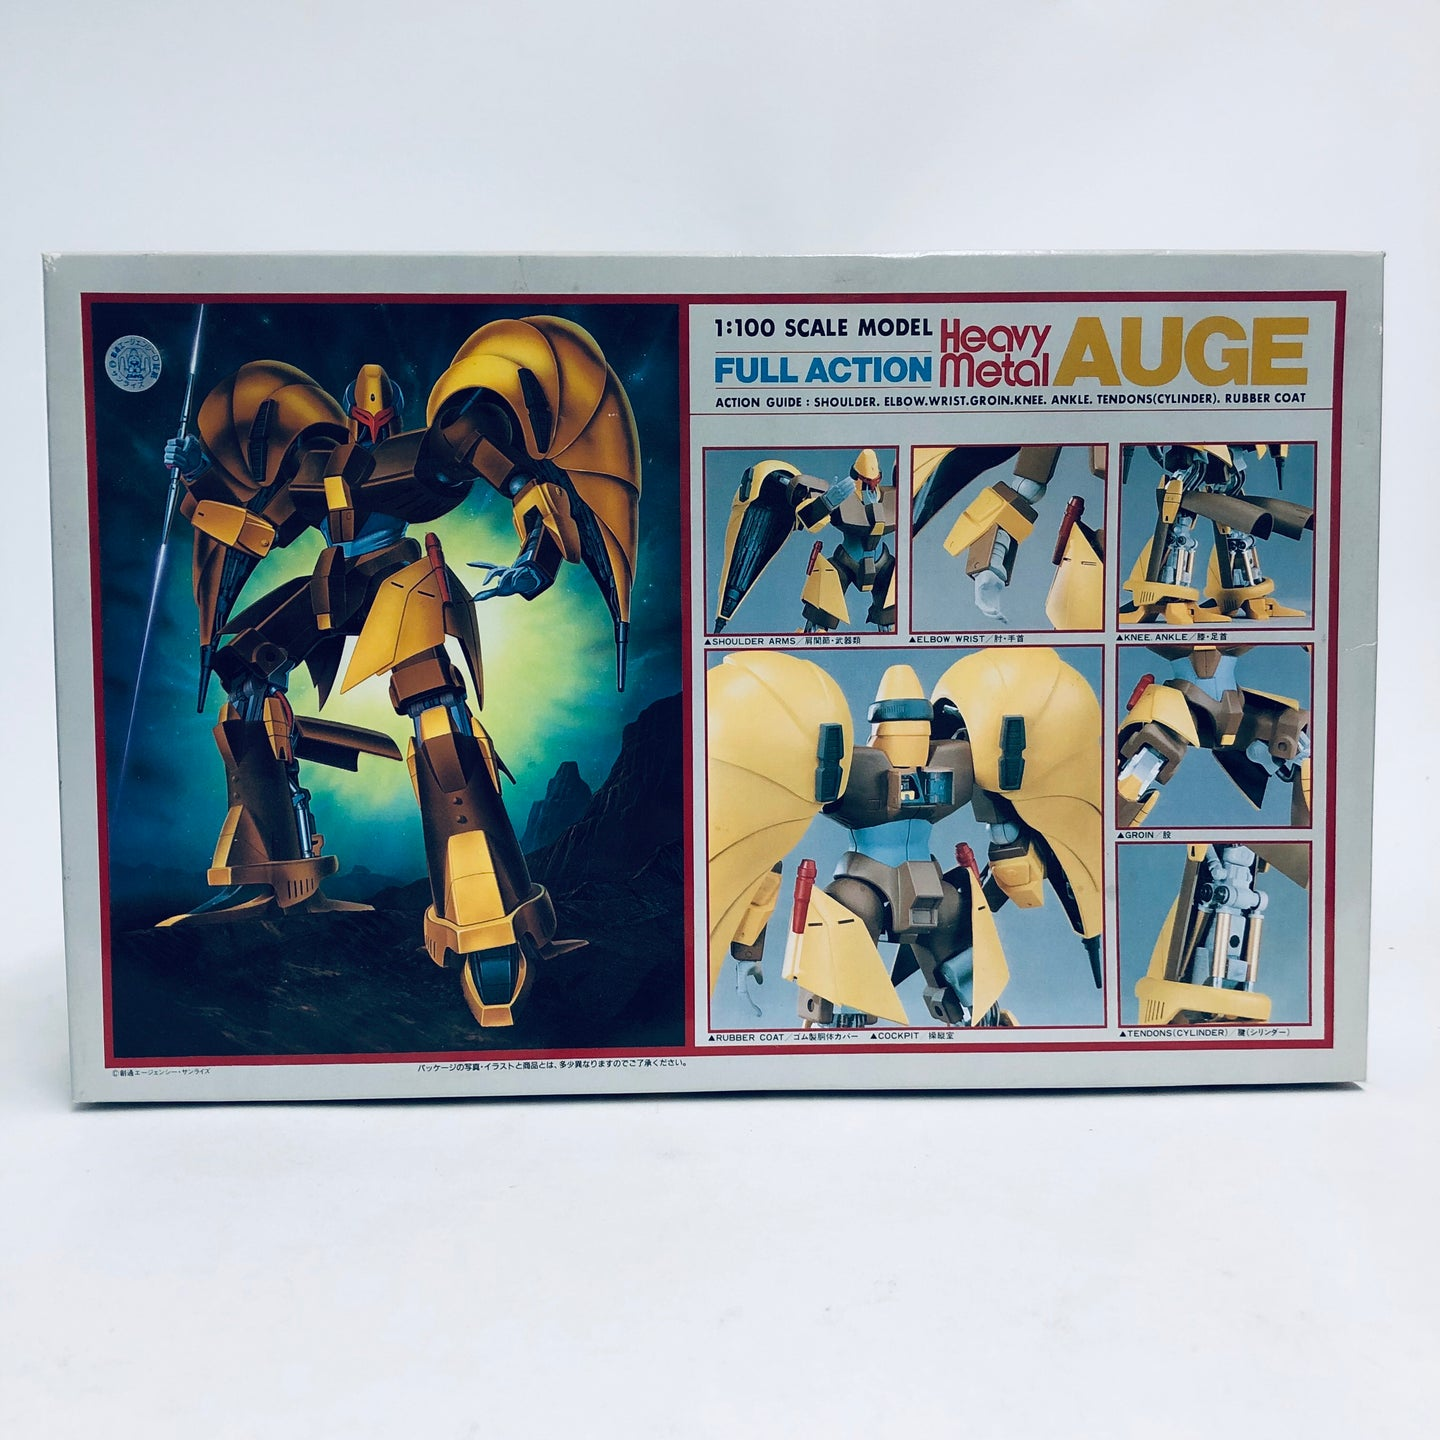 Bandai 1/100 Full Action Heavy Metal Auge Robot Spirit 15192200